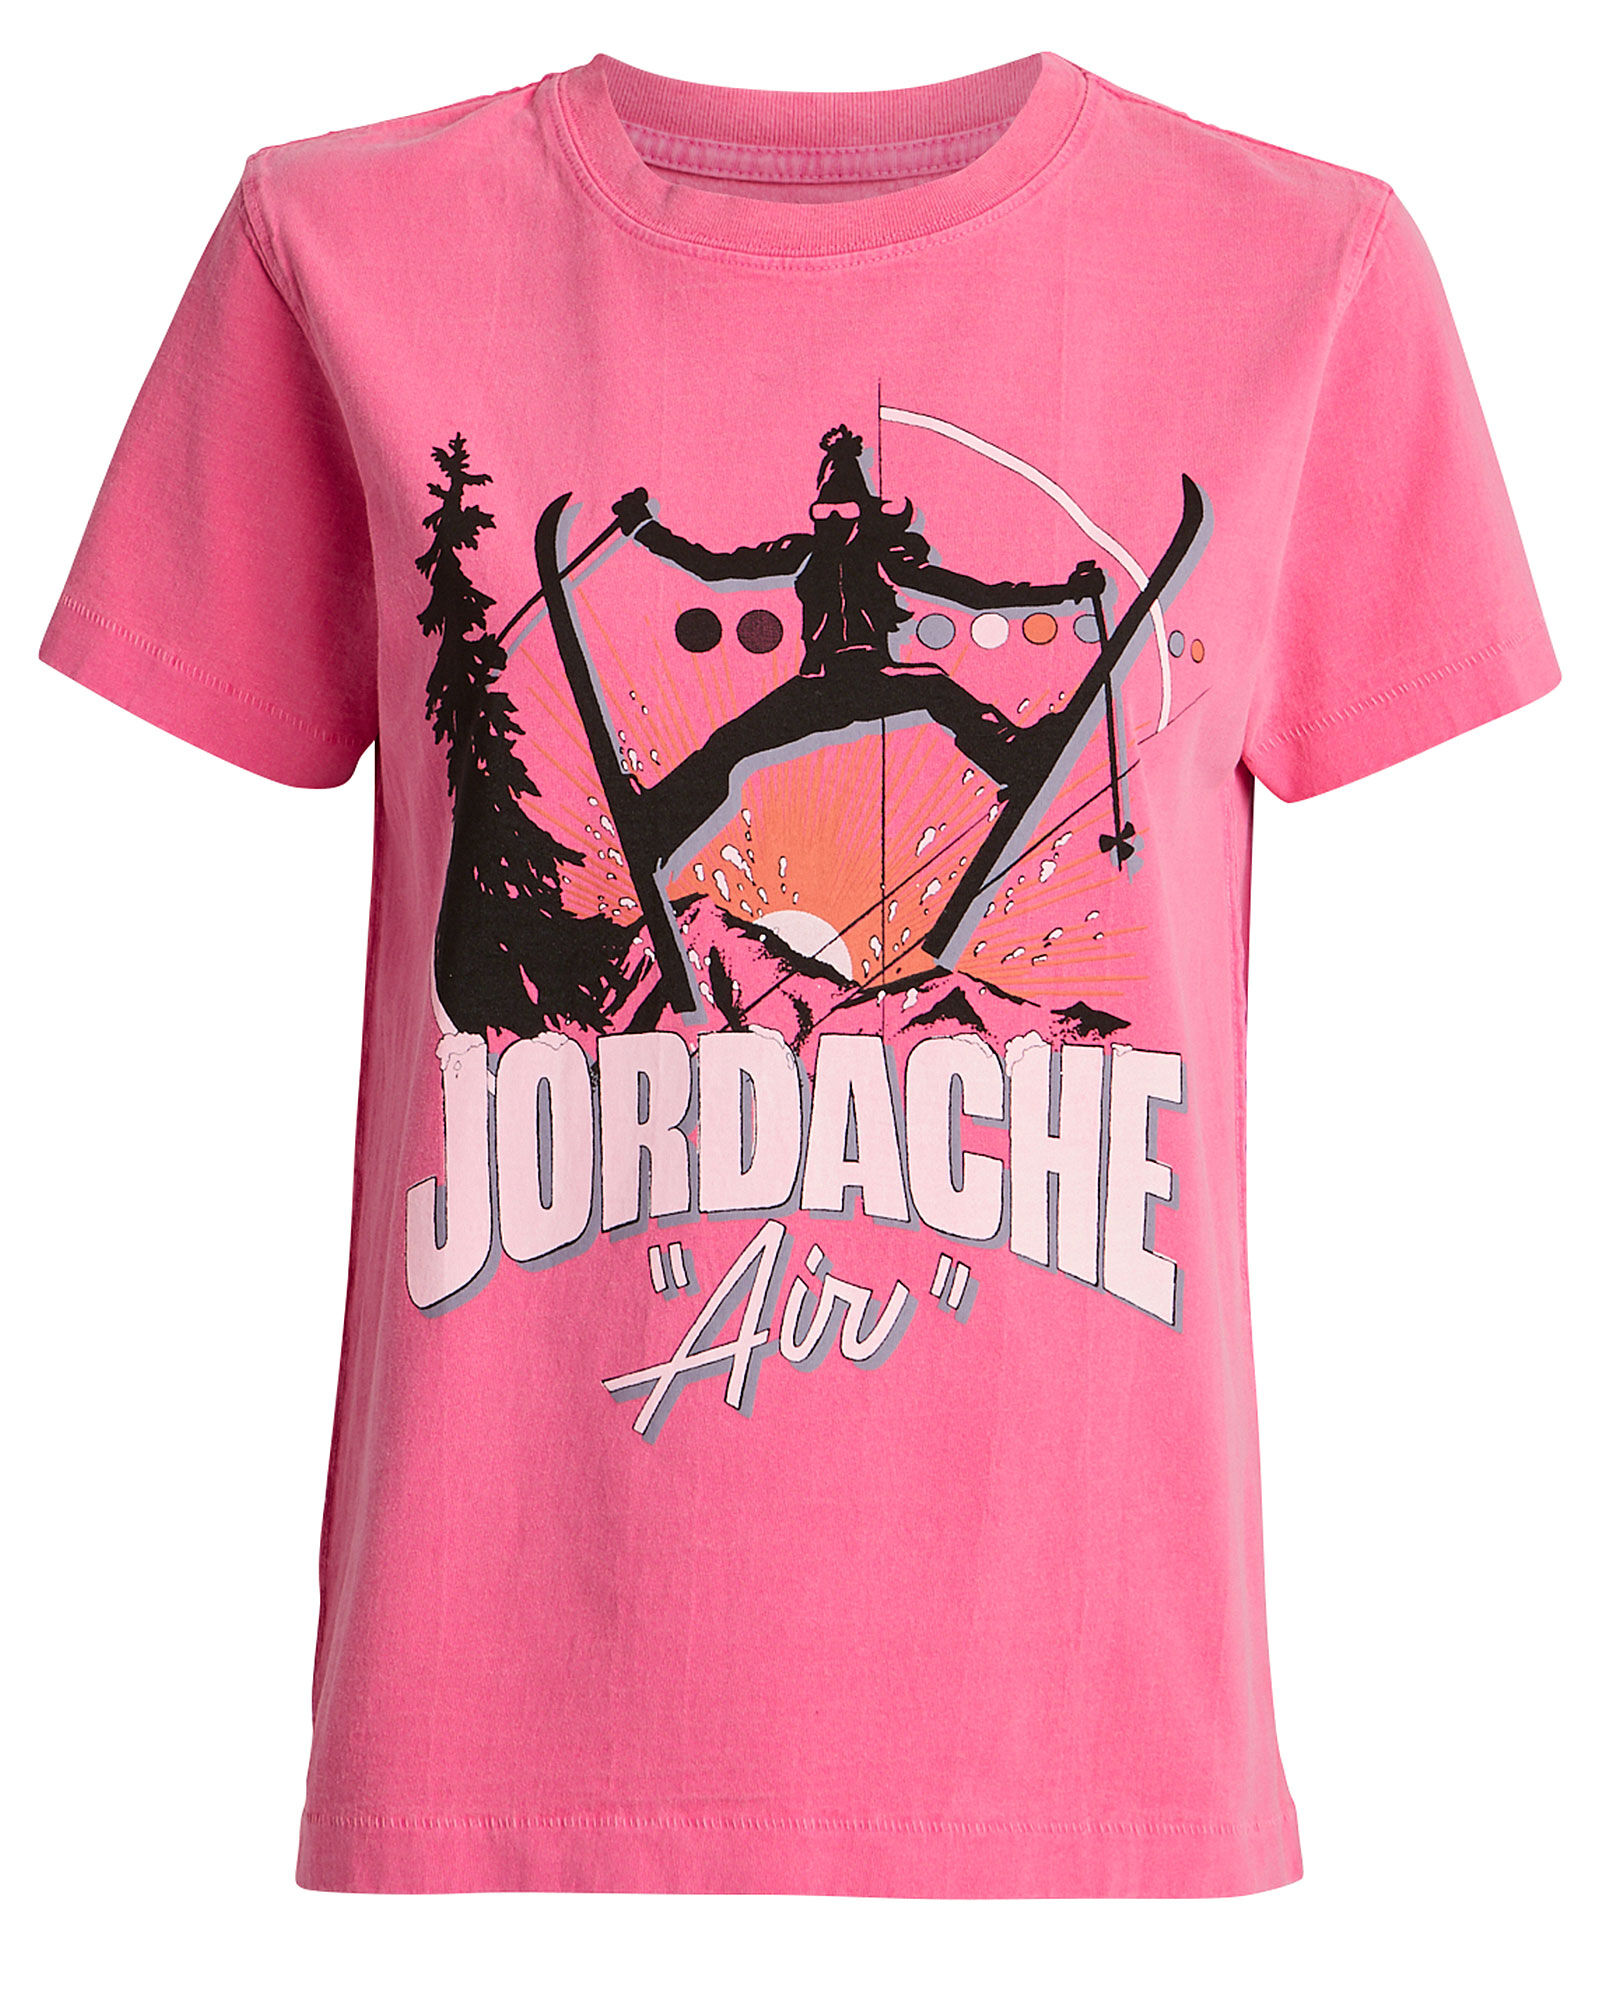 Air Graphic Jersey T-shirt, PINK, hi-res